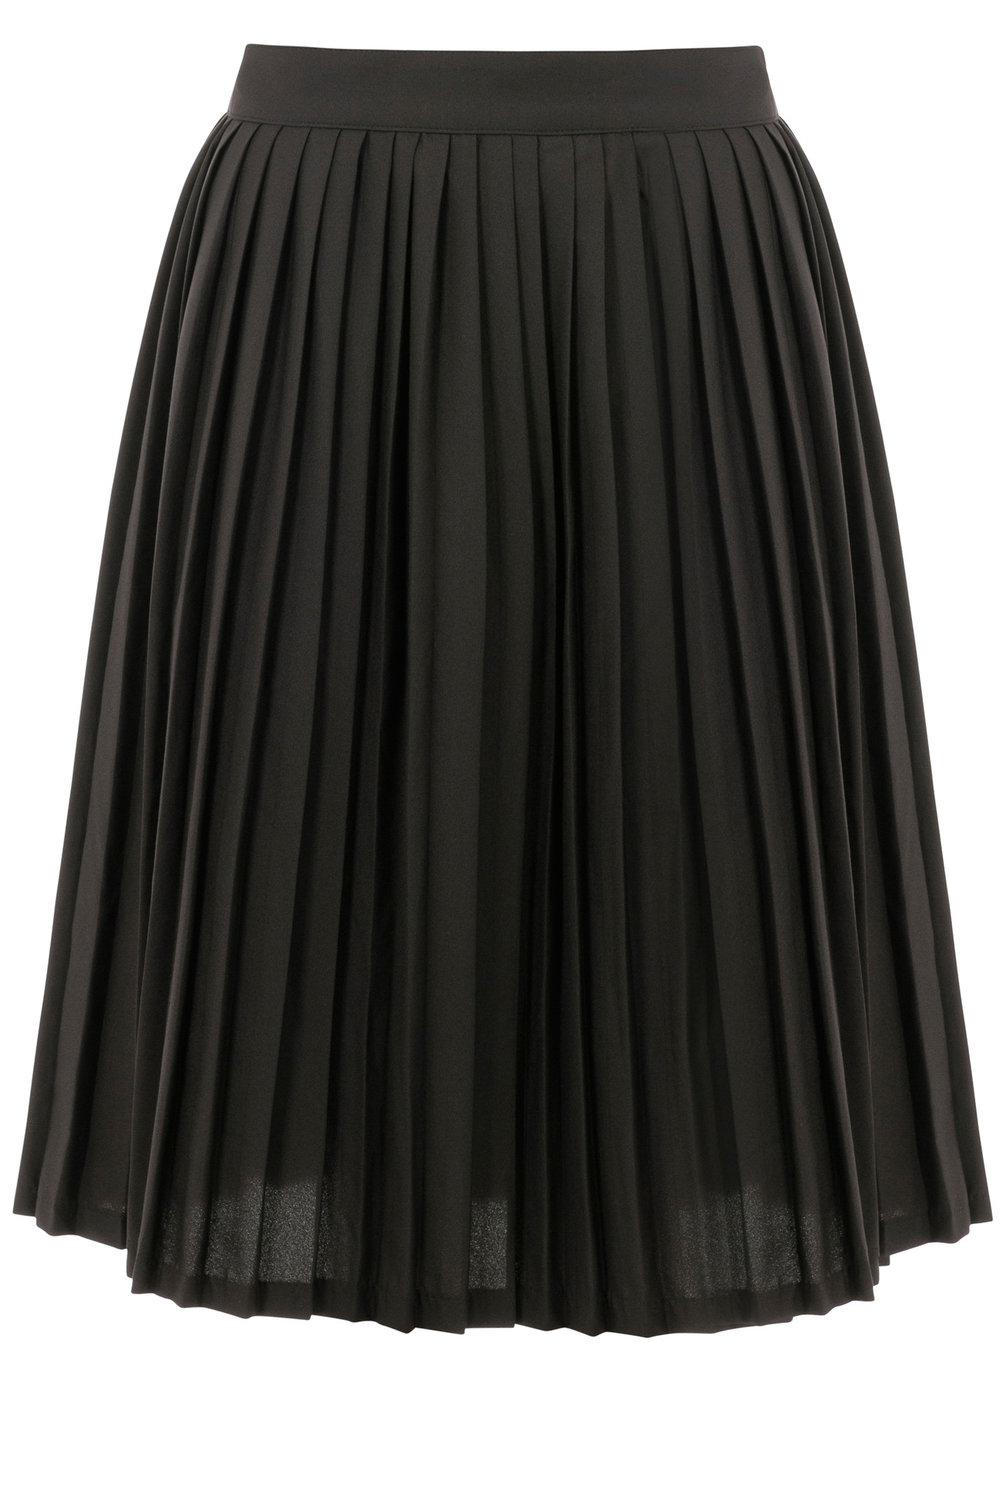 black pleated skirt as seen on lydia bright